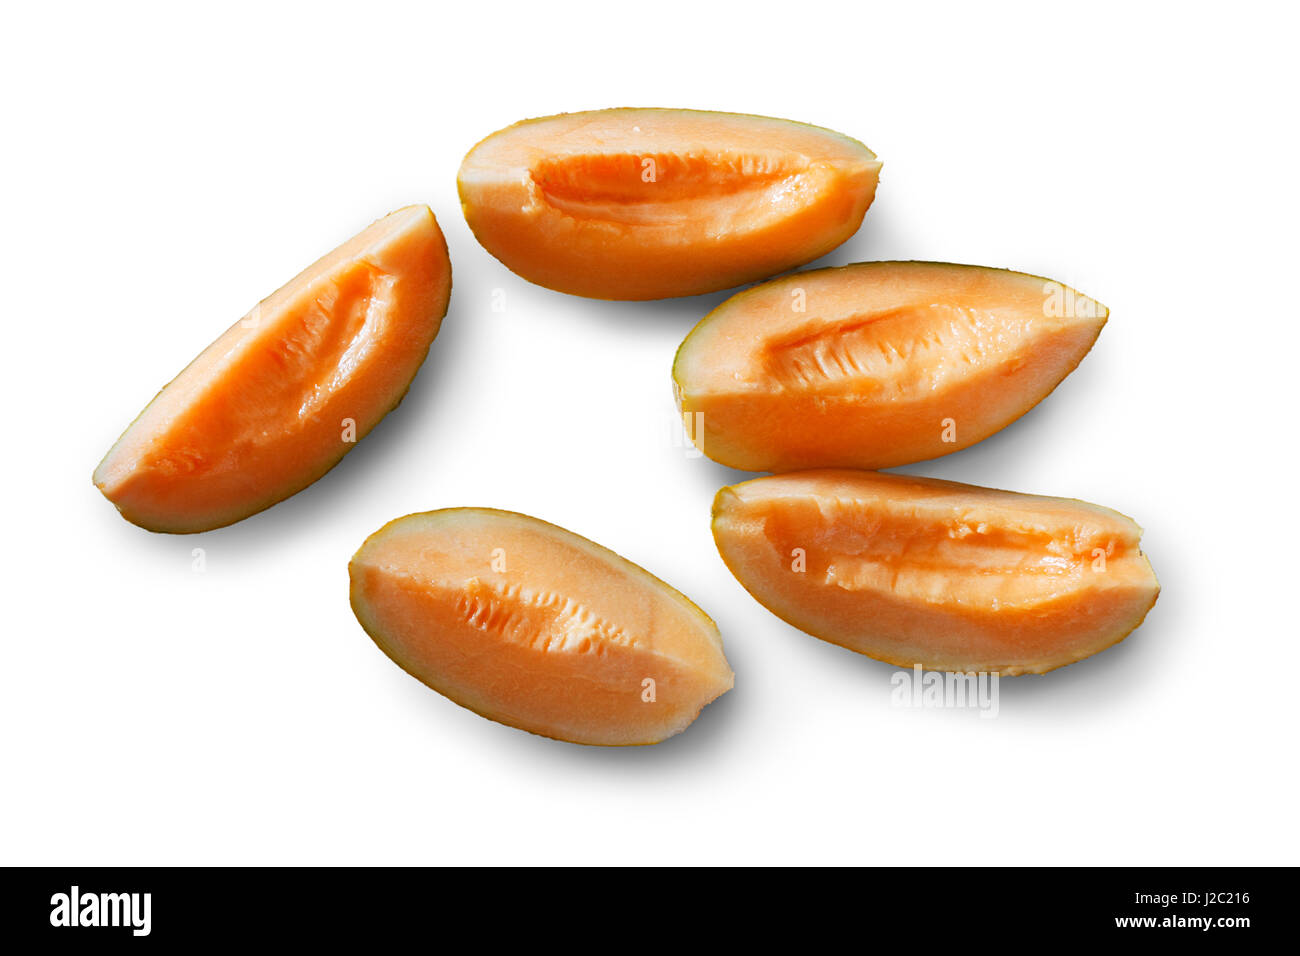 Sugar Melon Stock Photos & Sugar Melon Stock Images - Alamy